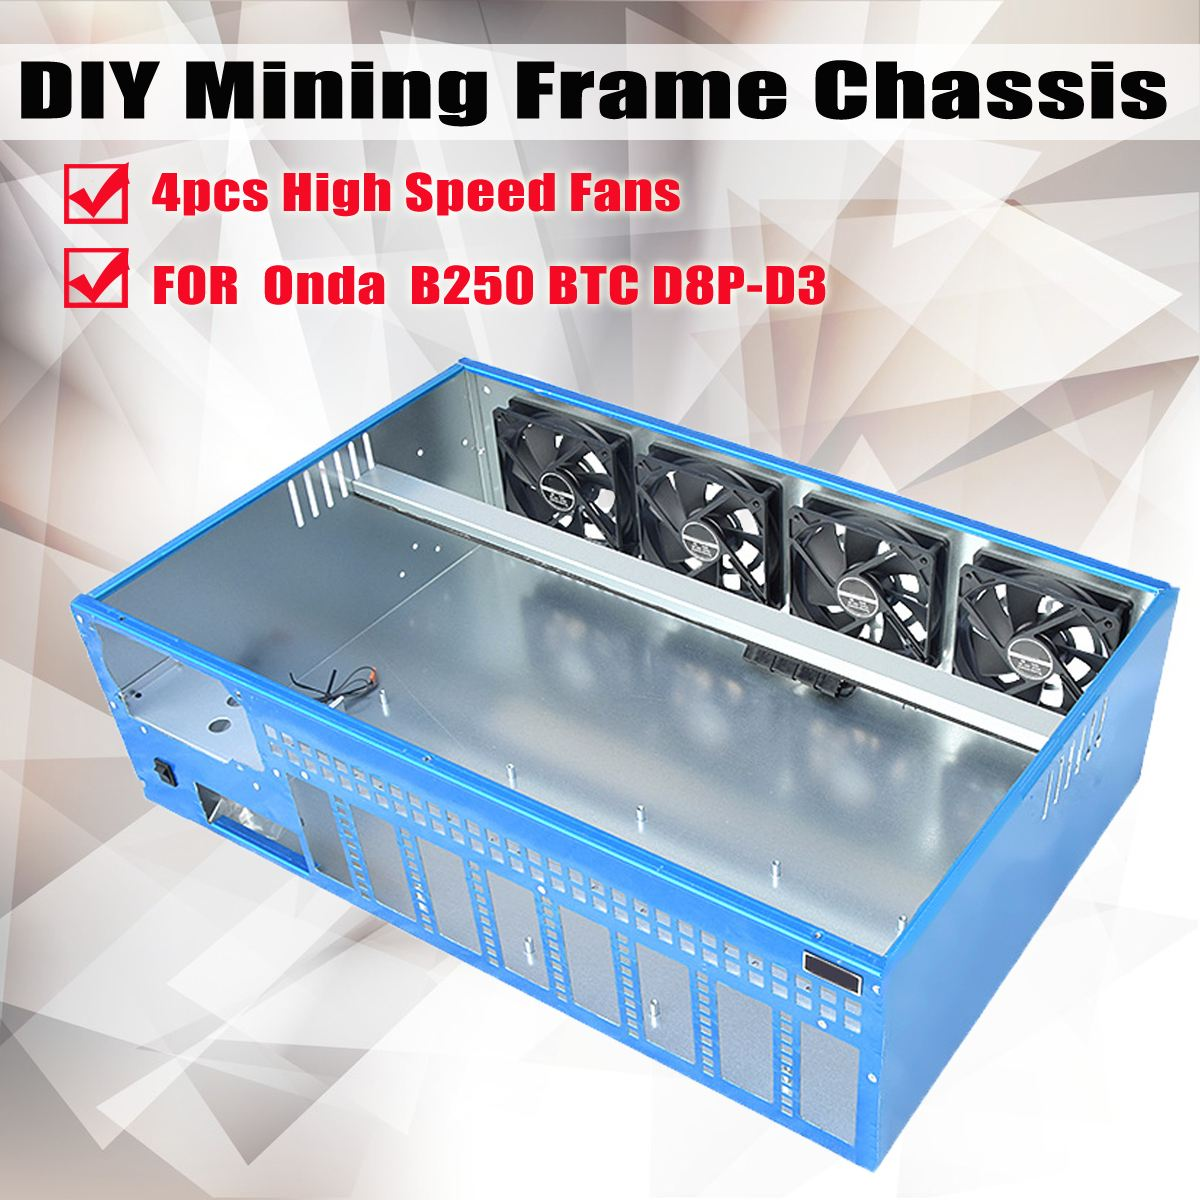 8GPU DIY Mining Frame Chassis PC Case Computer Case With 4 fans For Onda B250 BTC D8P-D3 Motherboard Computer Parts купить в Москве 2019